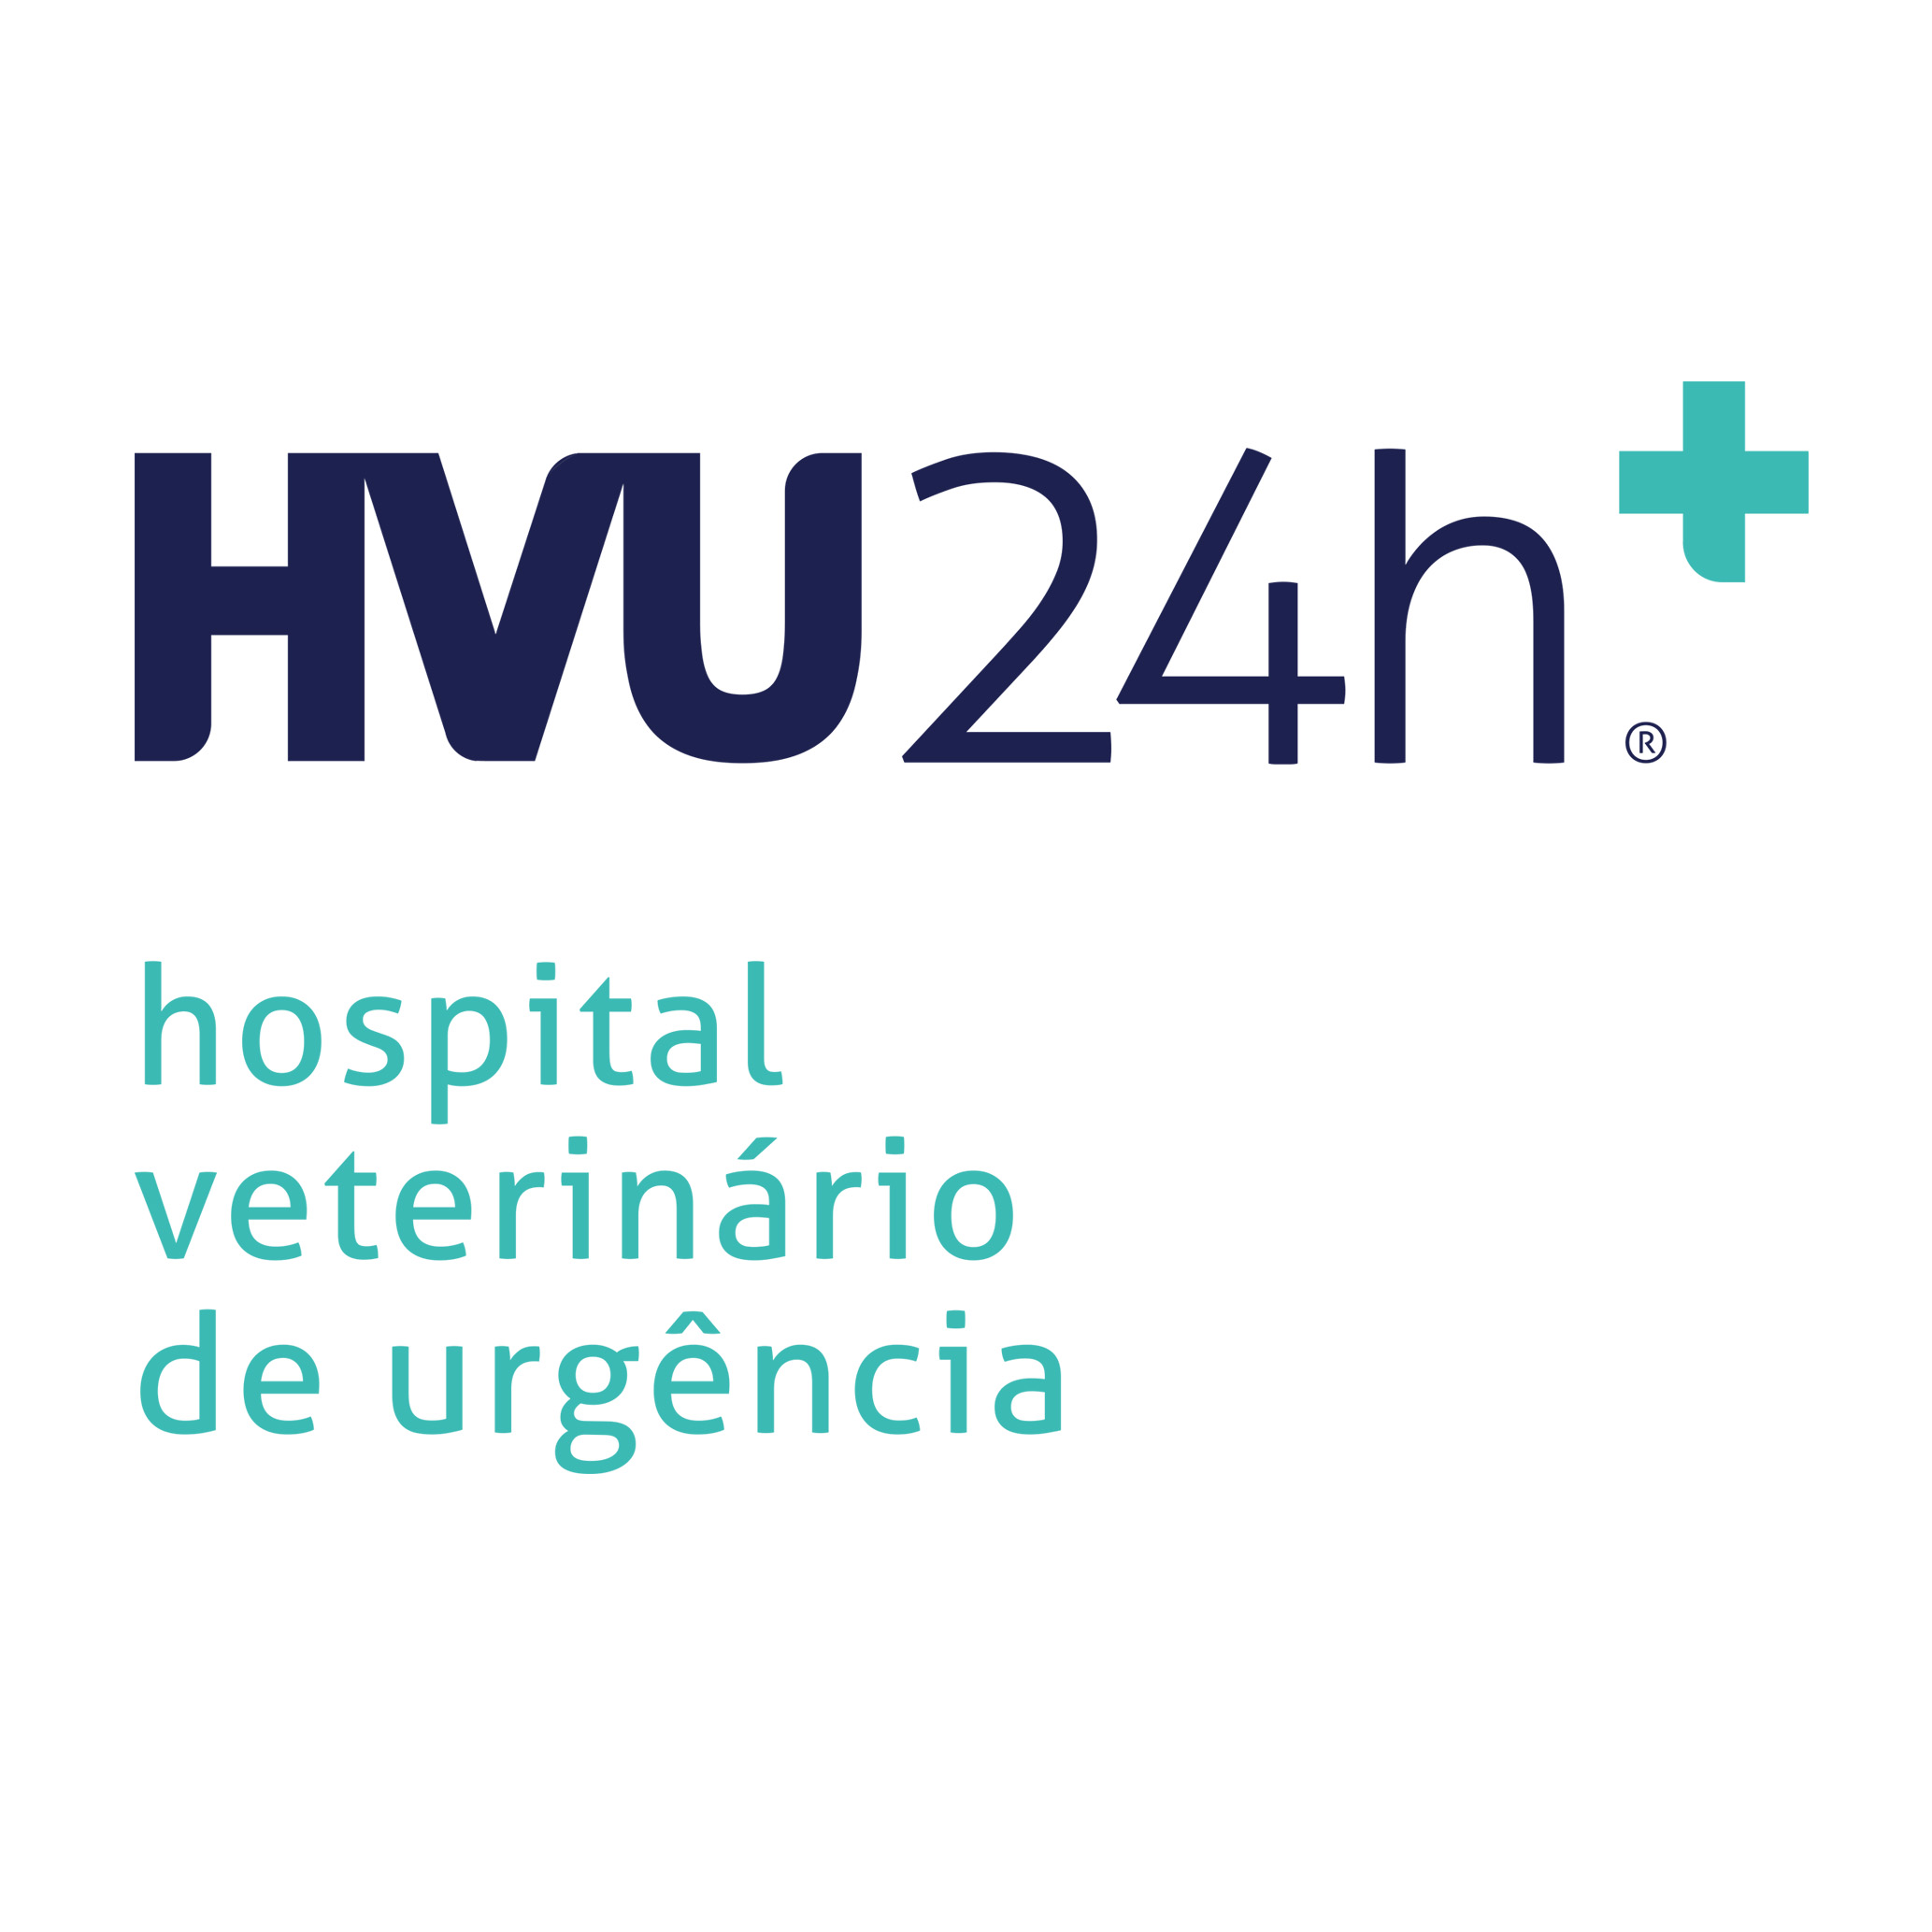 marca-hvu24h